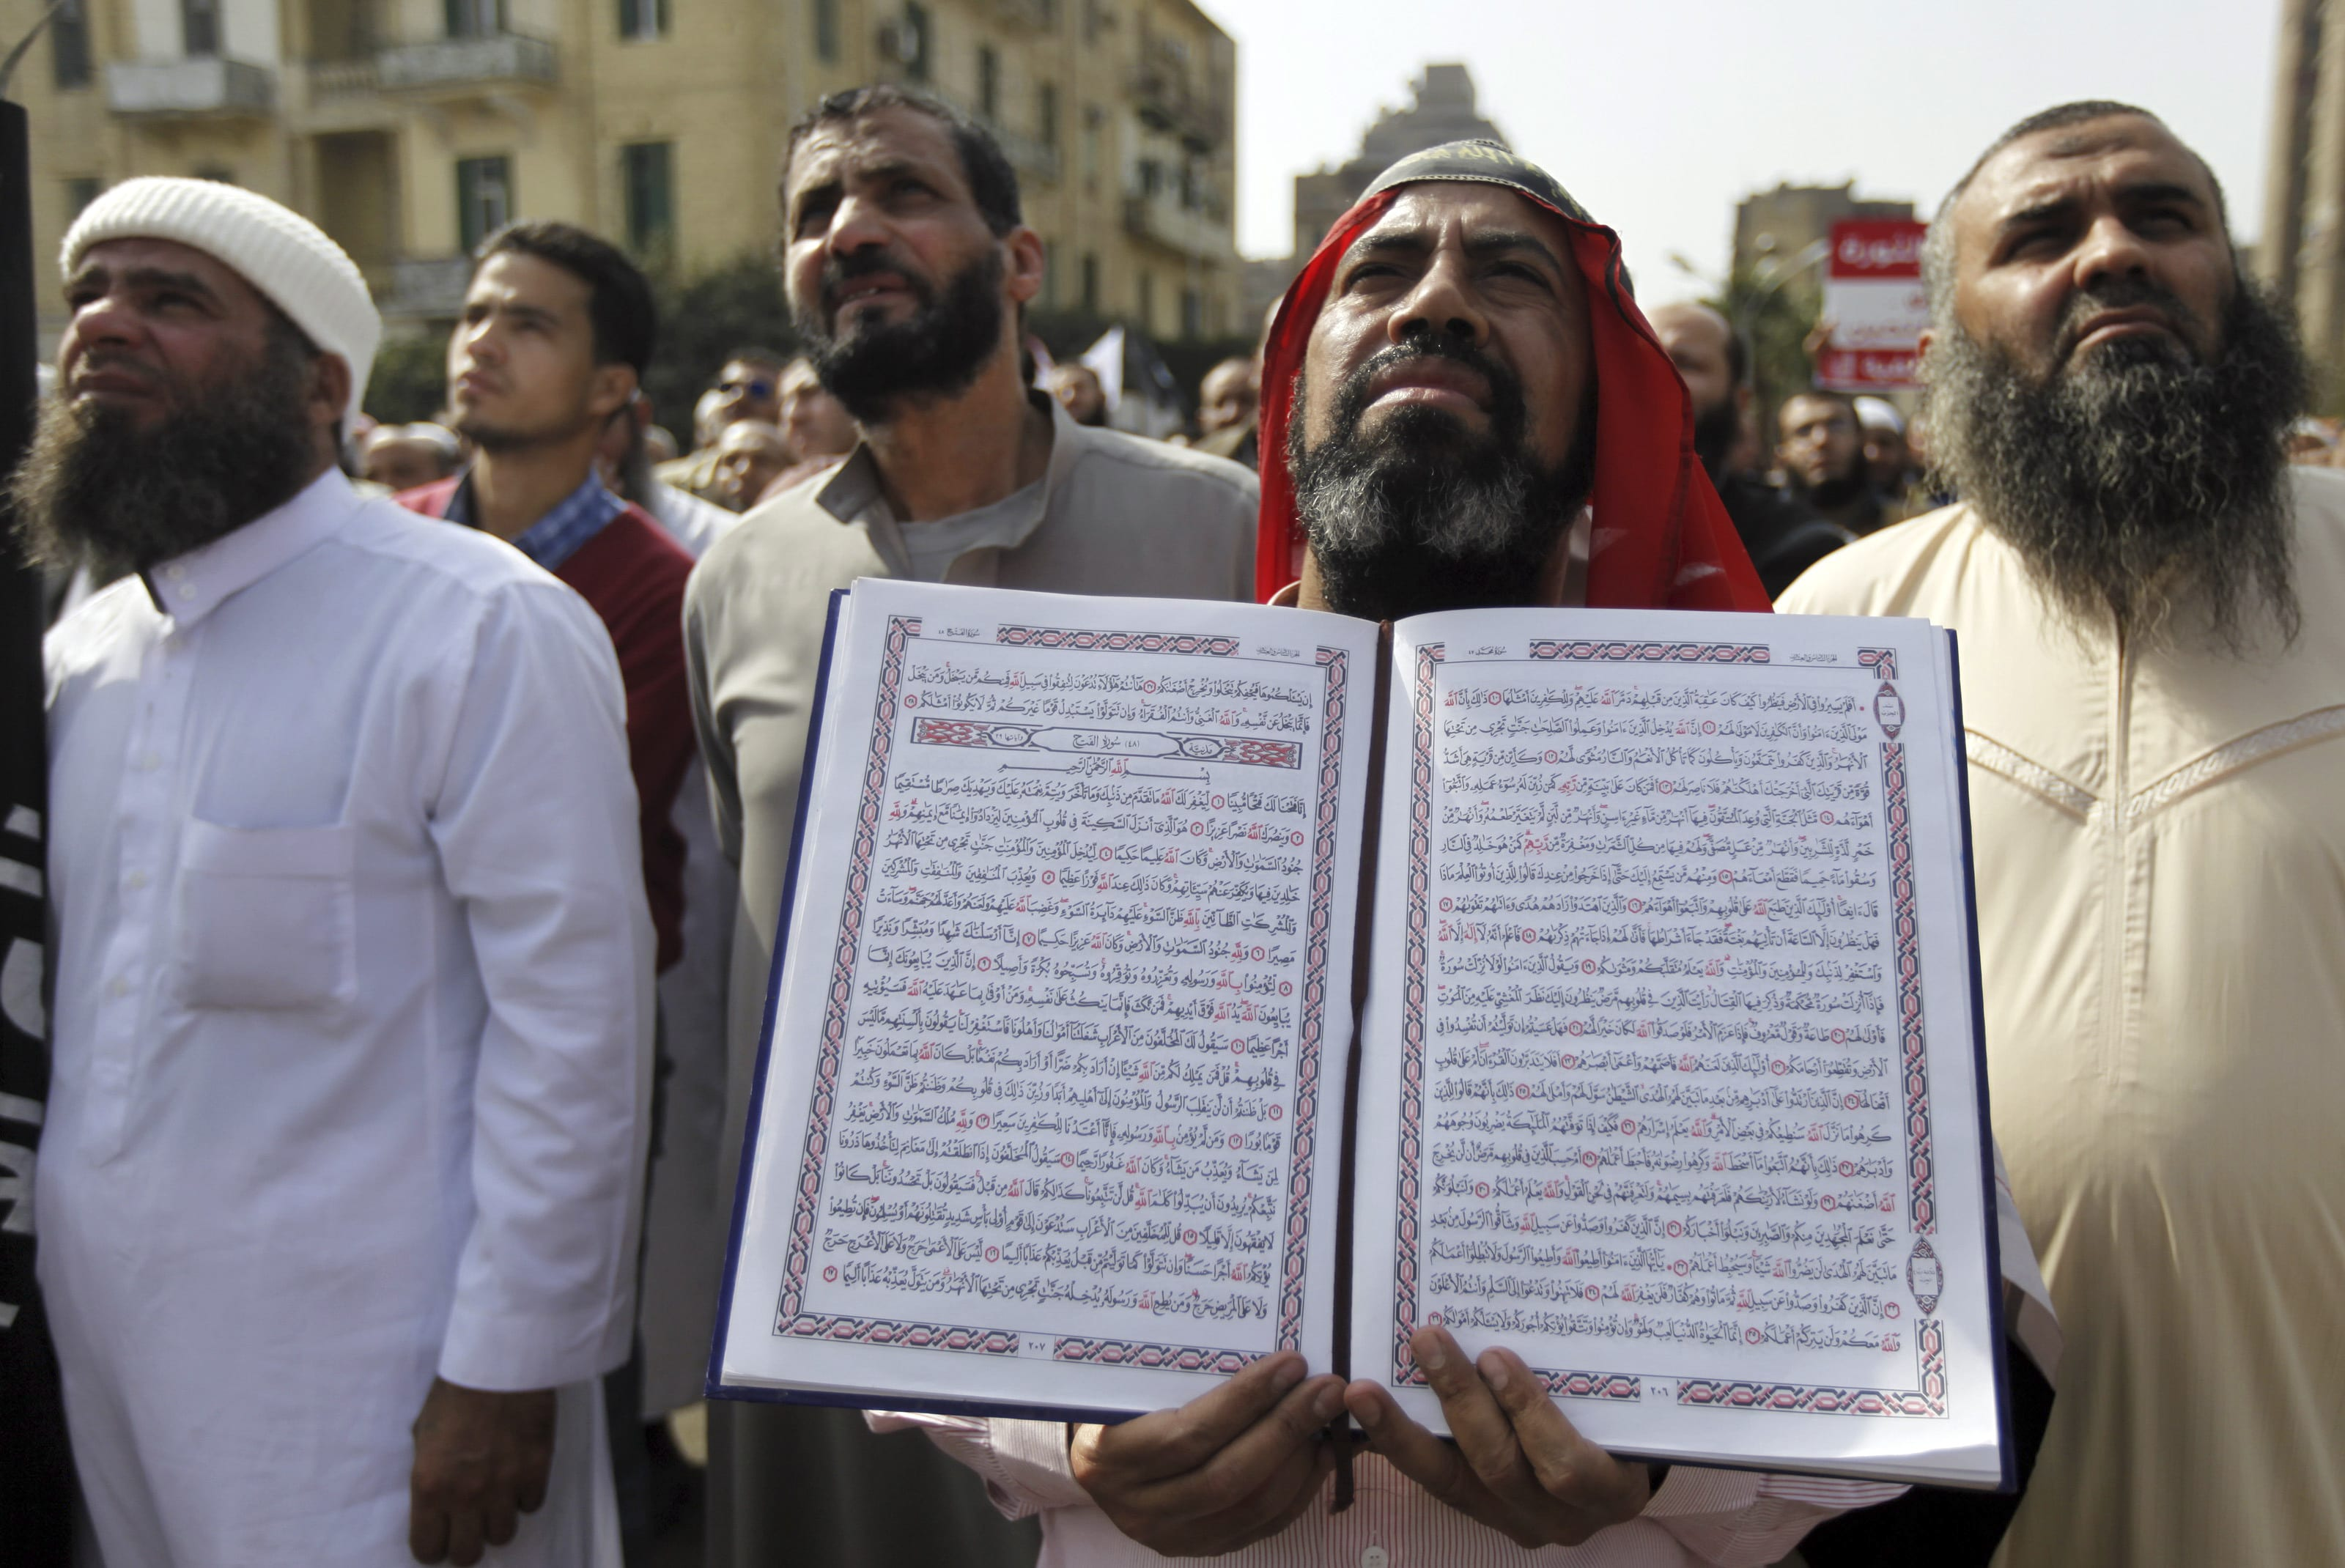 Image An Egyptian Salafi Muslim man holds a copy of the Koran during a protest in support of police officers who were suspended from work because of their beards, Cairo, March 1, 2013 (REUTERS/Amr Abdallah Dalsh).